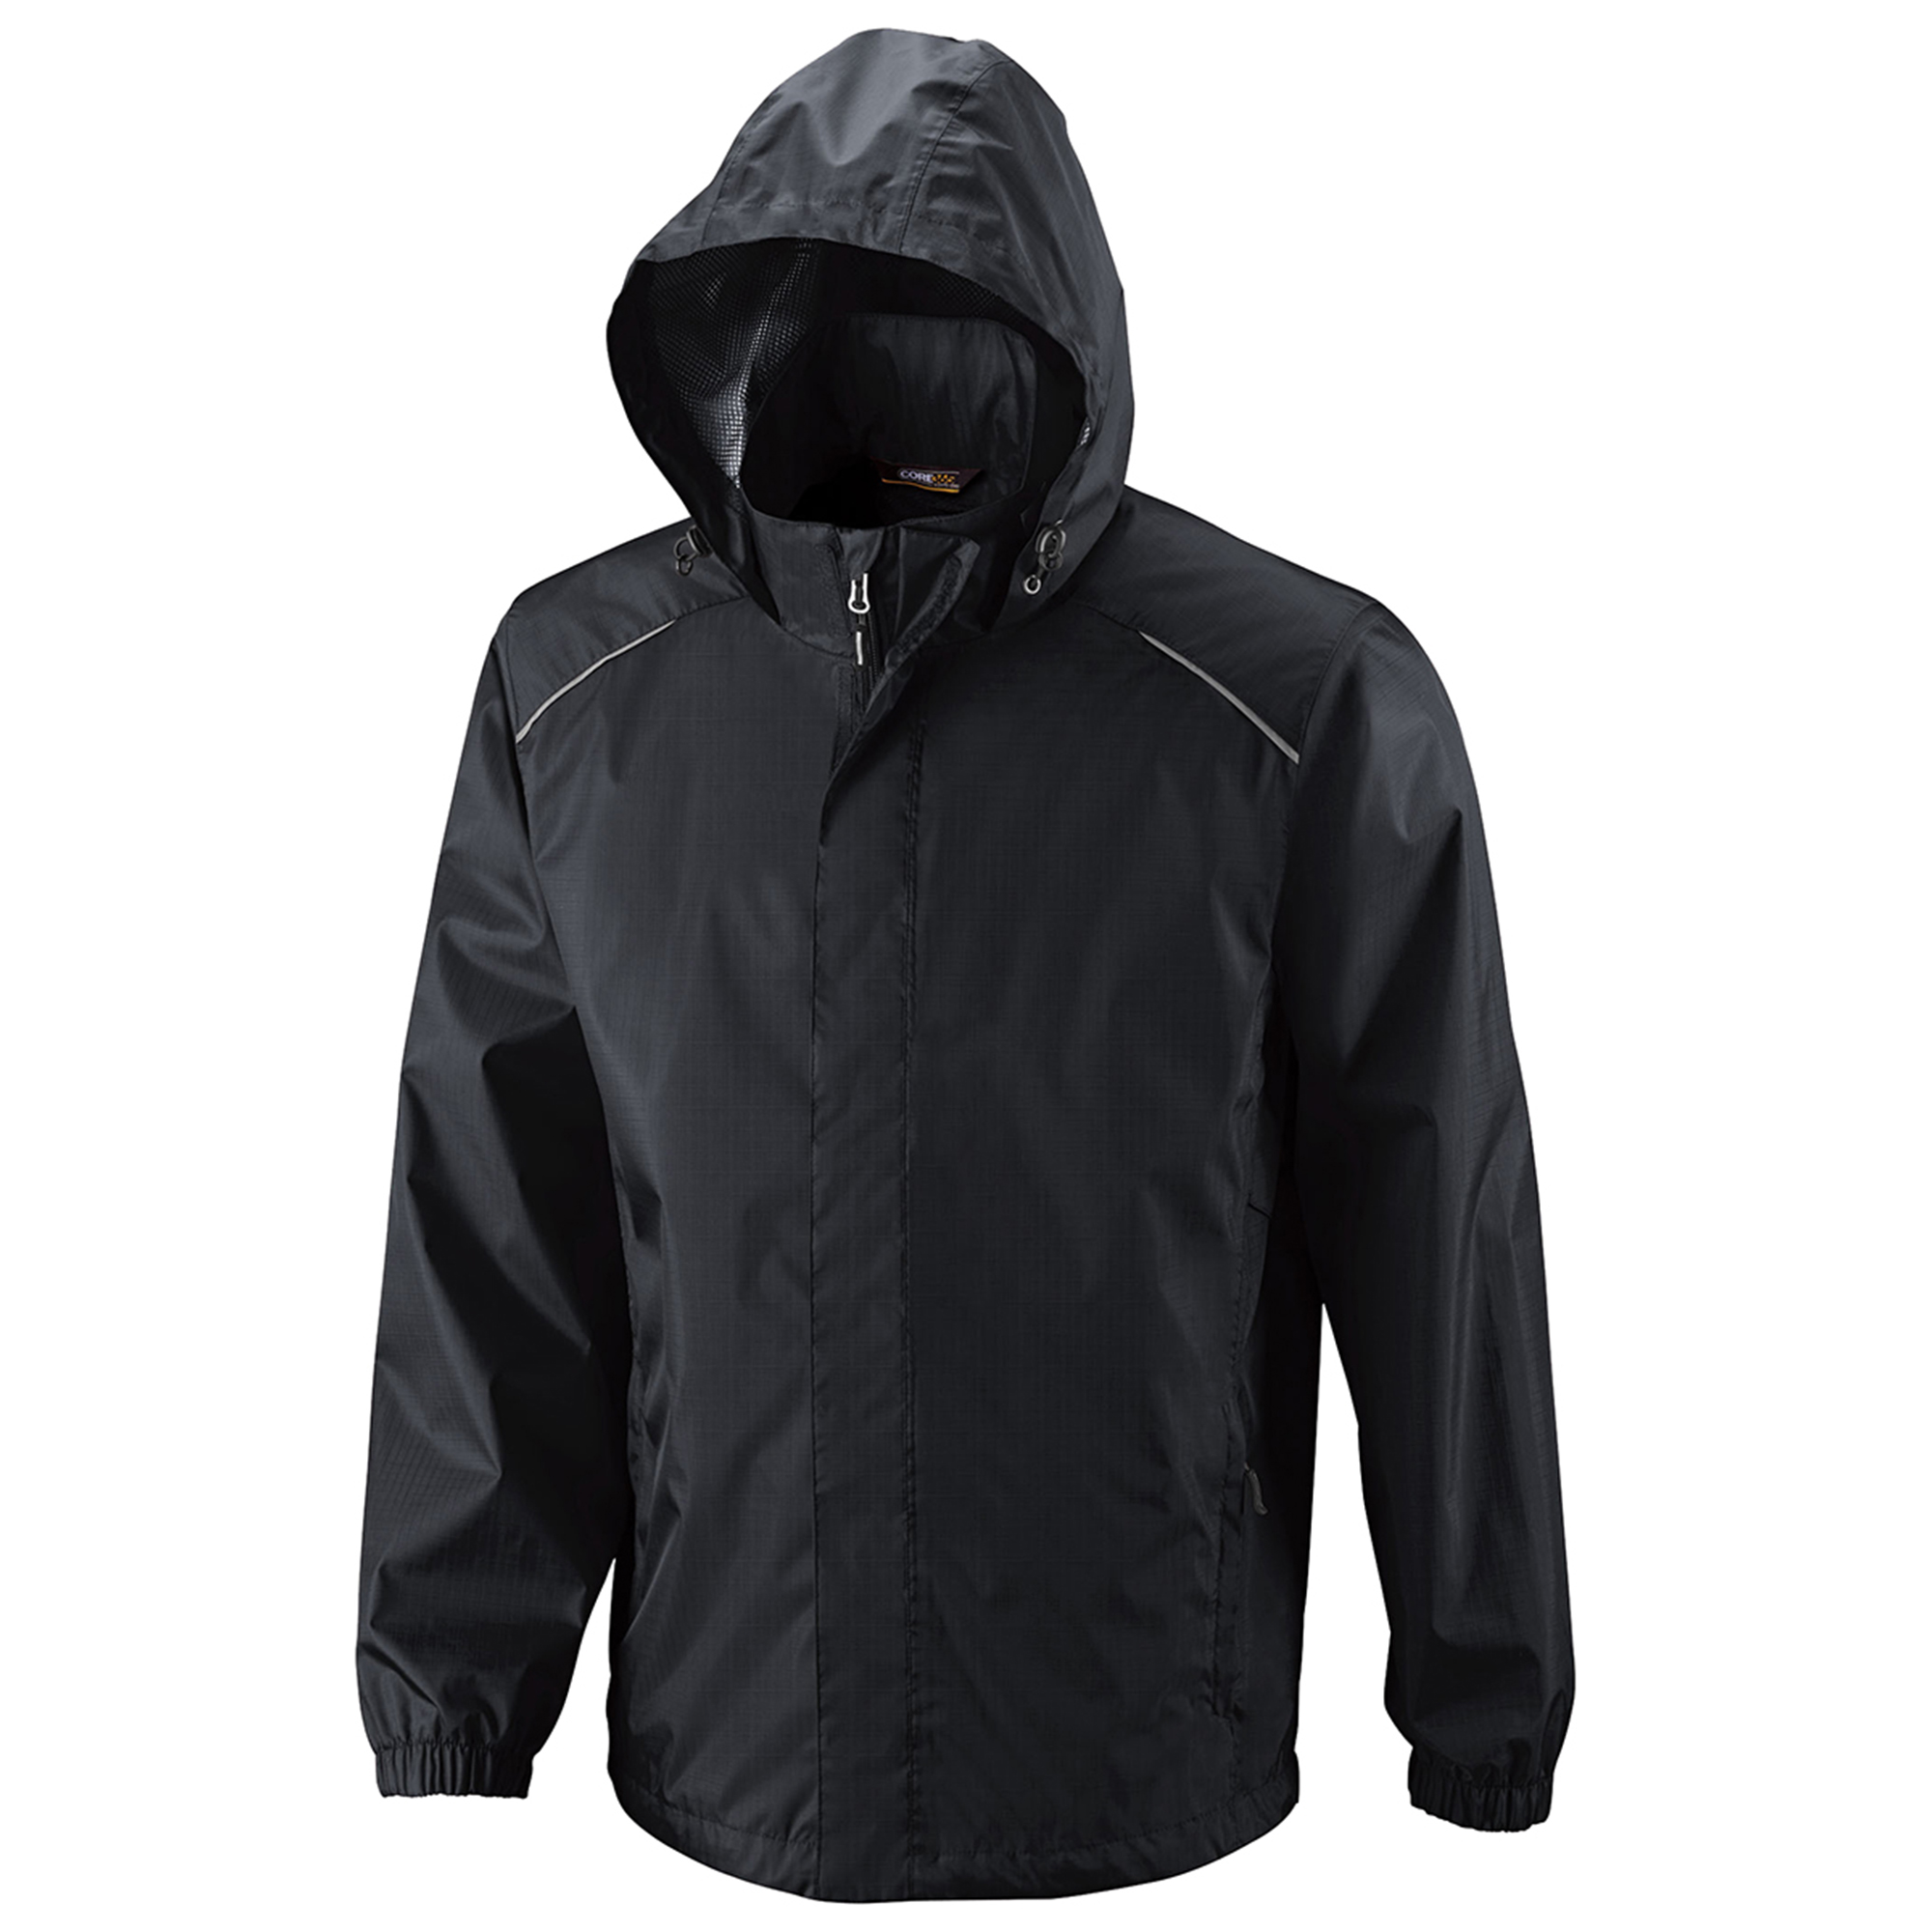 North End 88185 Men's Seam-Sealed Elasticized Cuffs Jacket at Sears.com